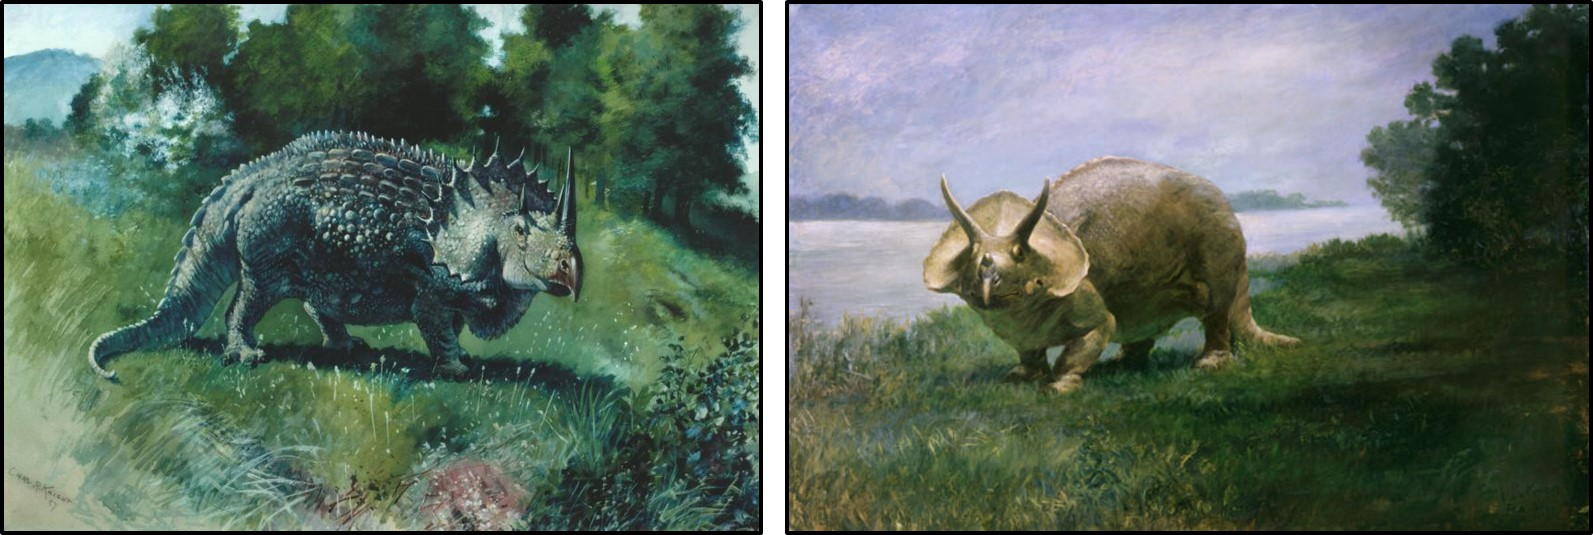 Charles Knight's historic illustrations of Triceratops